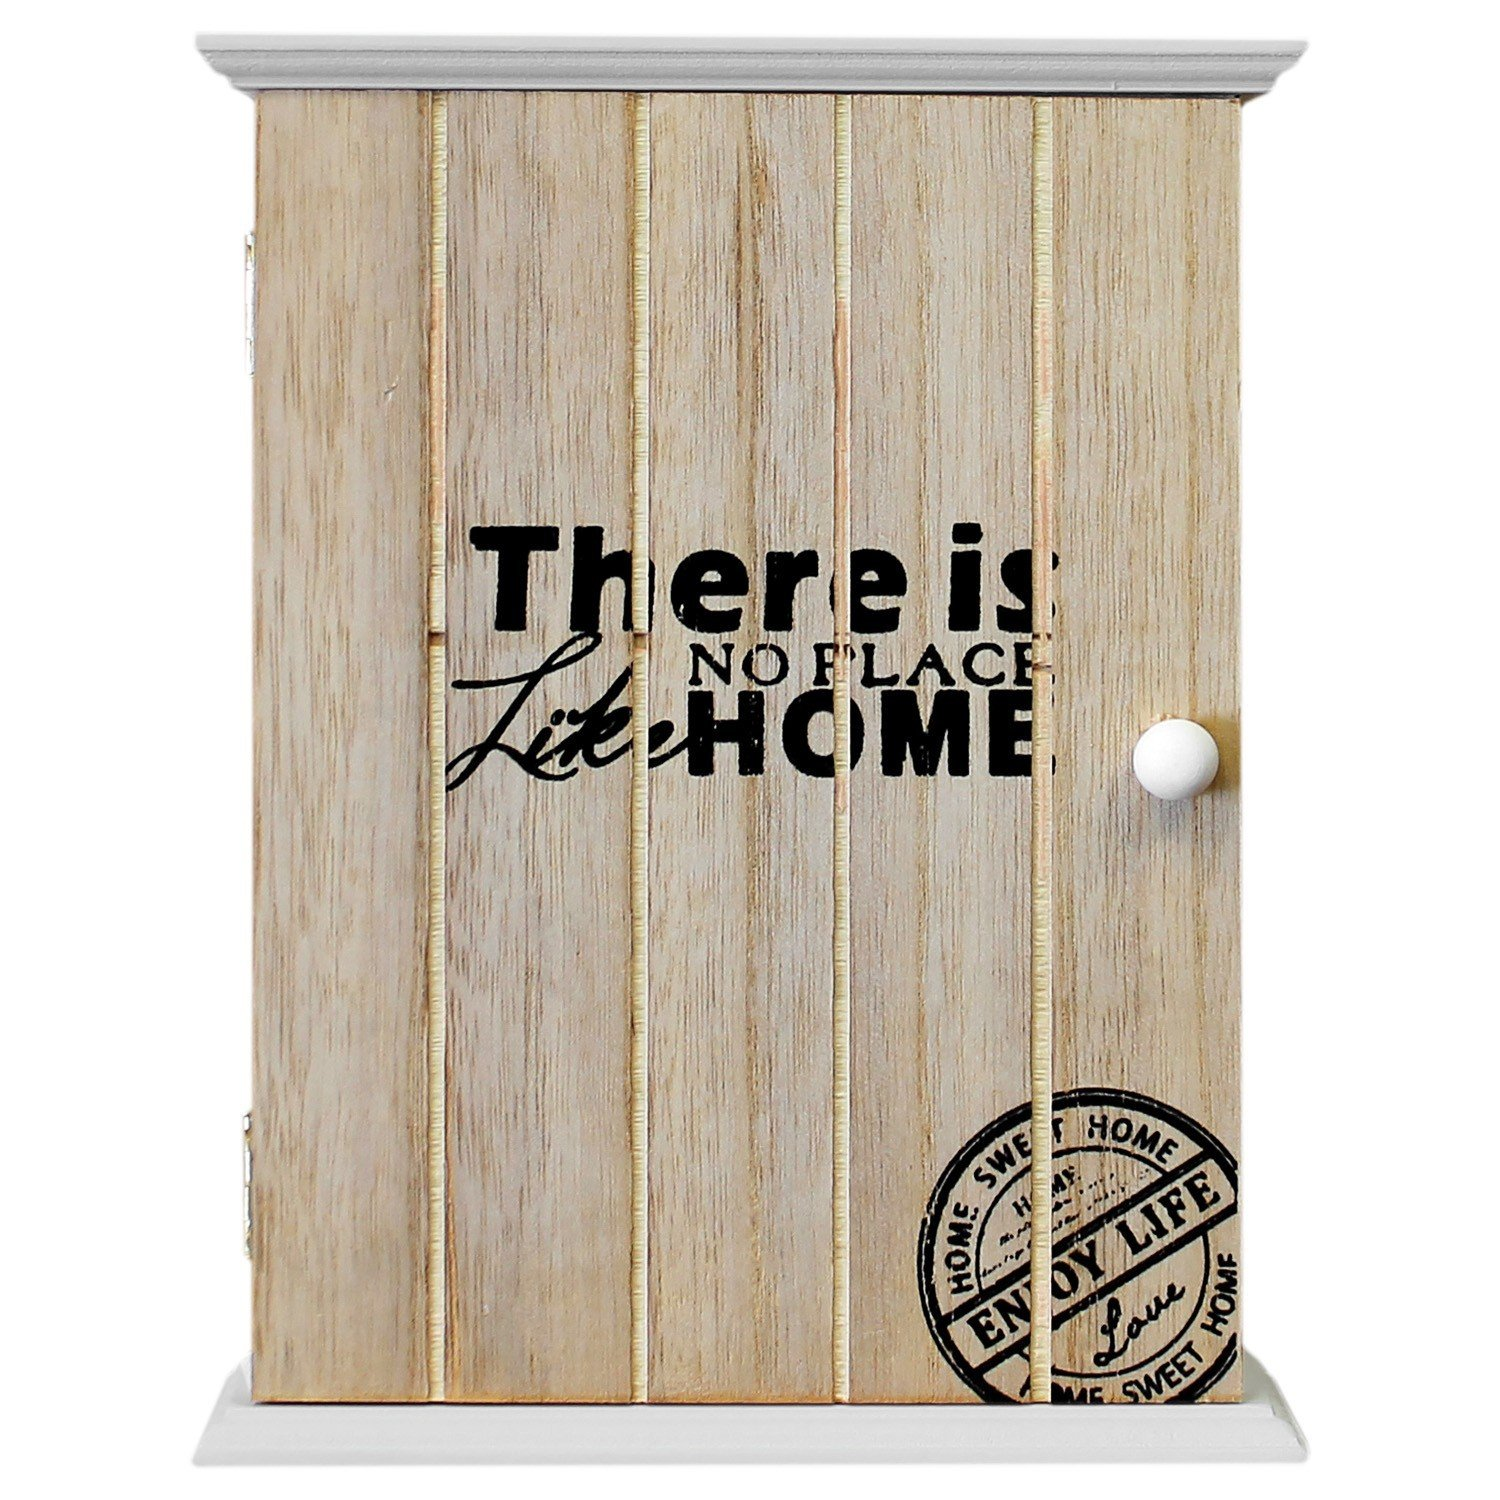 Armario para llaves, pared, armario colgador para llaves, There is no place like home, 18,5 x 24 x 6 cm, 6 ganchos para llaves, natural/blanco